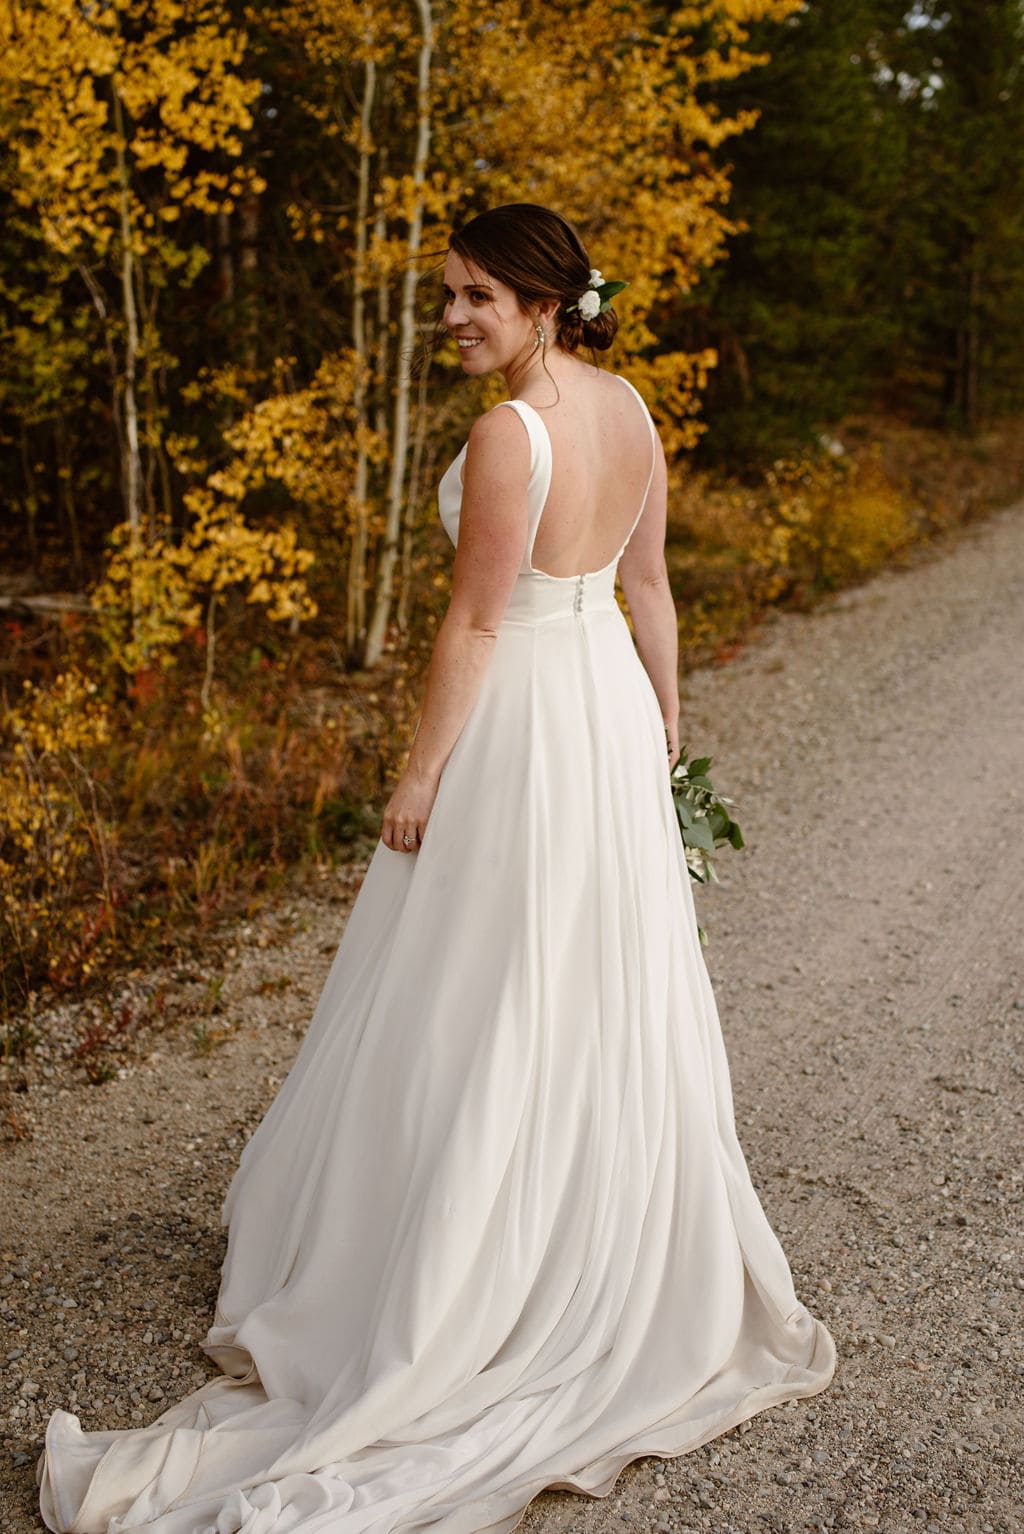 Bridal Portraits With Colorado Fall Colors